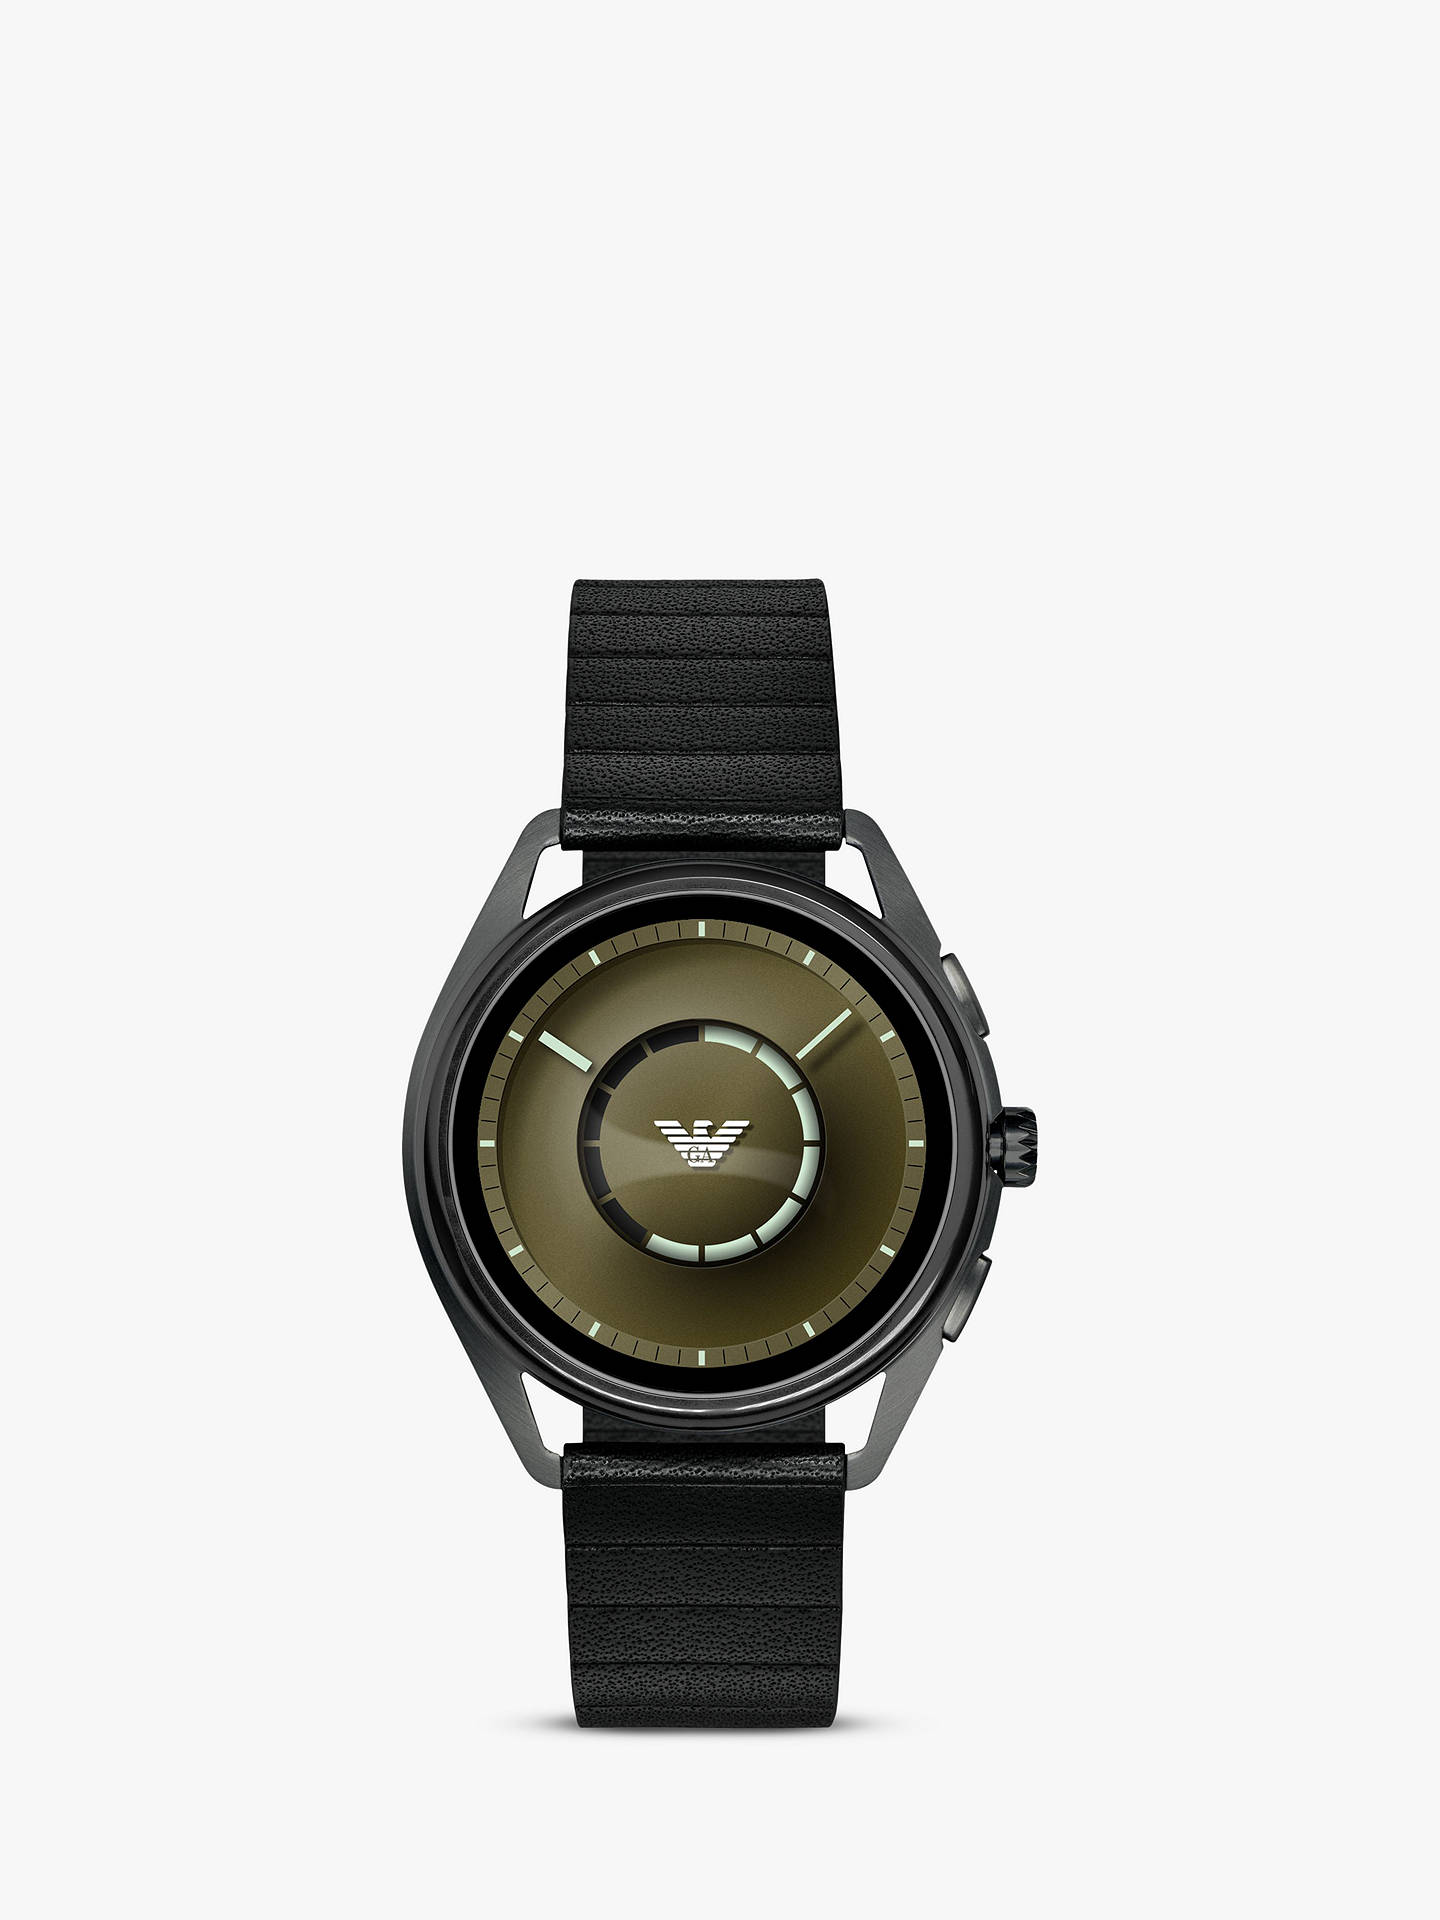 4b8c75036a54 Buy Emporio Armani Connected ART5009 Men s Touch Screen Leather Strap  Smartwatch